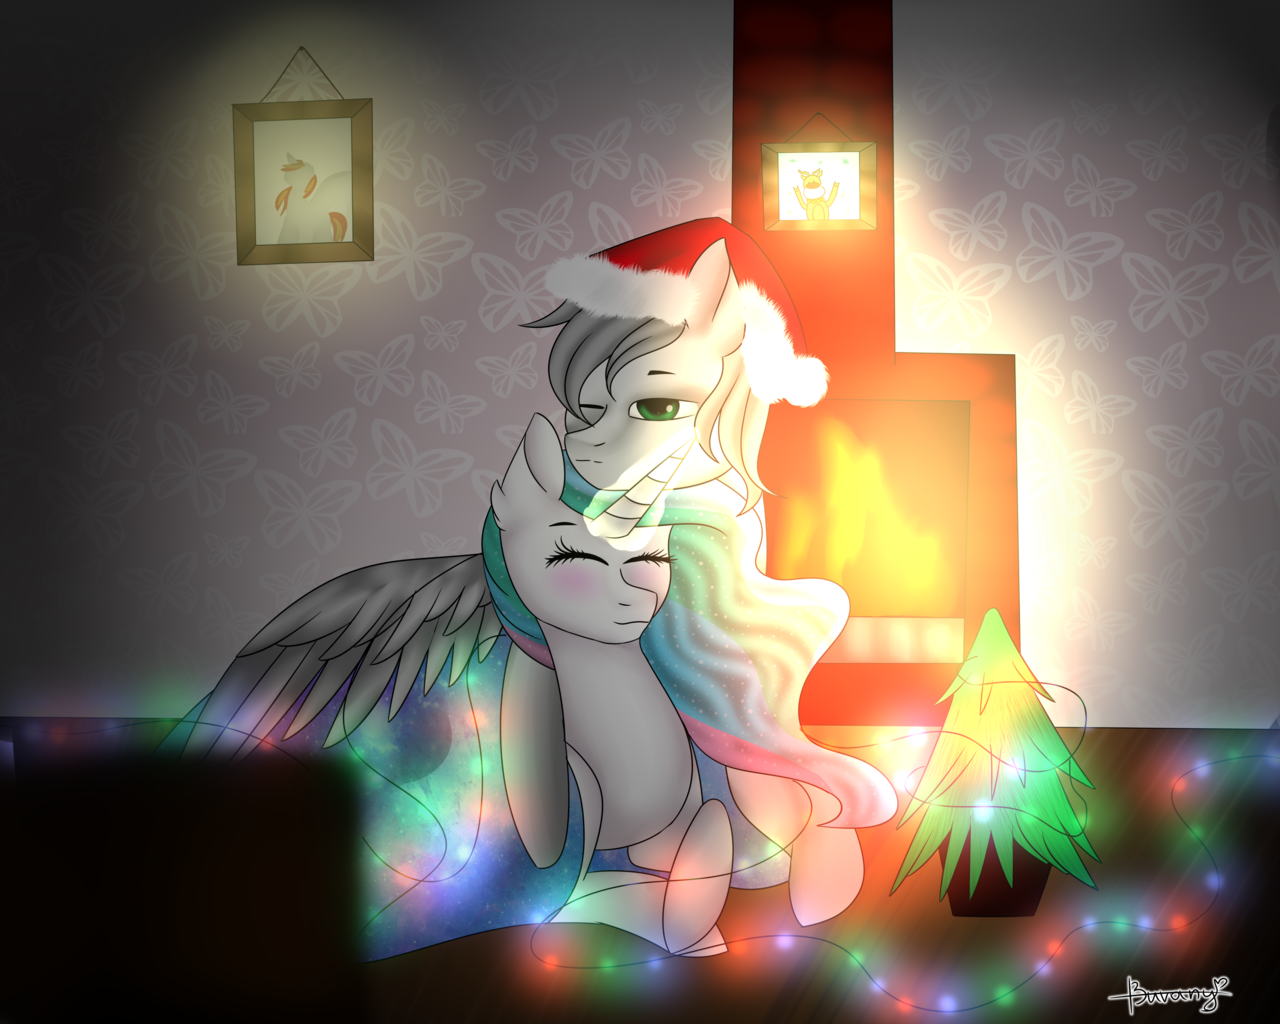 1608545 artist needed blanket christmas christmas lights christmas tree cuddling eyes closed fireplace glowing horn hat holiday oc